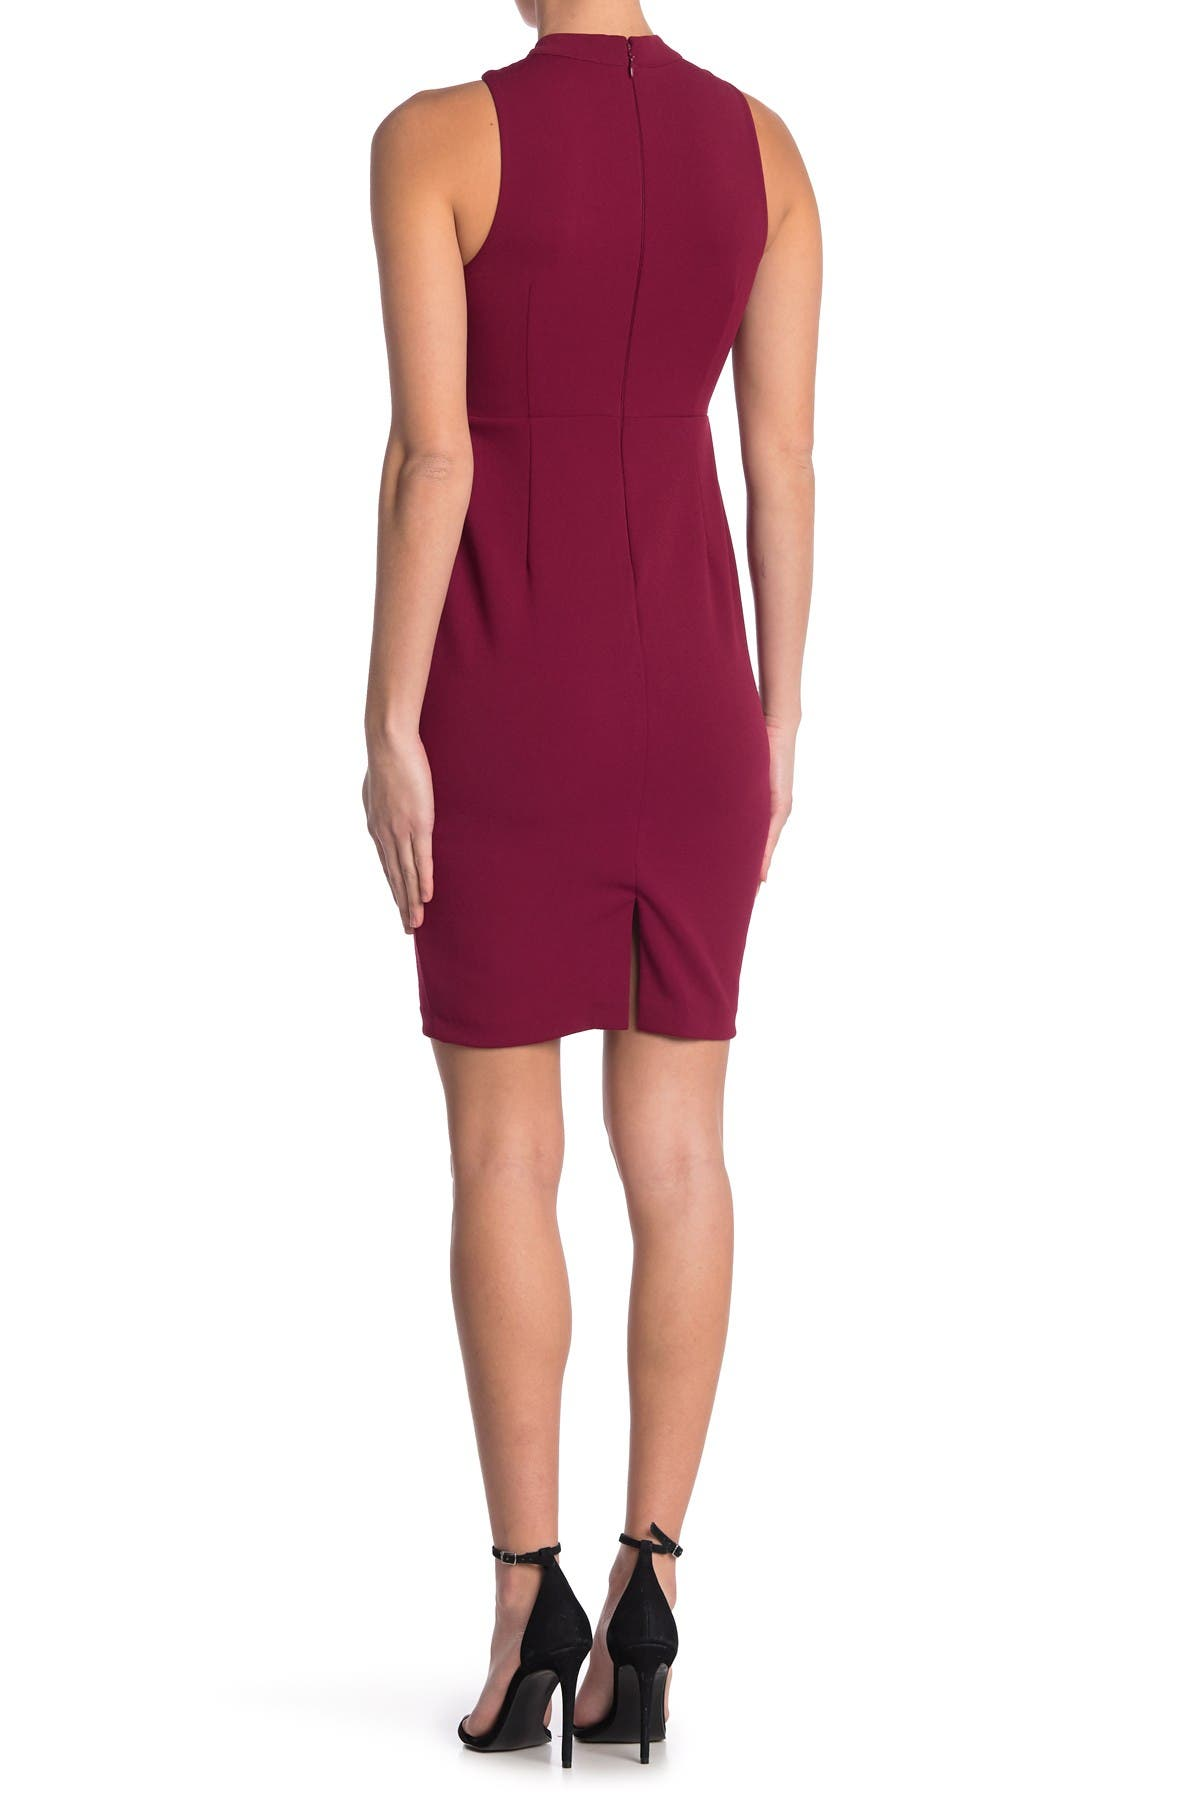 Image of GUESS Crisscross Cocktail Dress